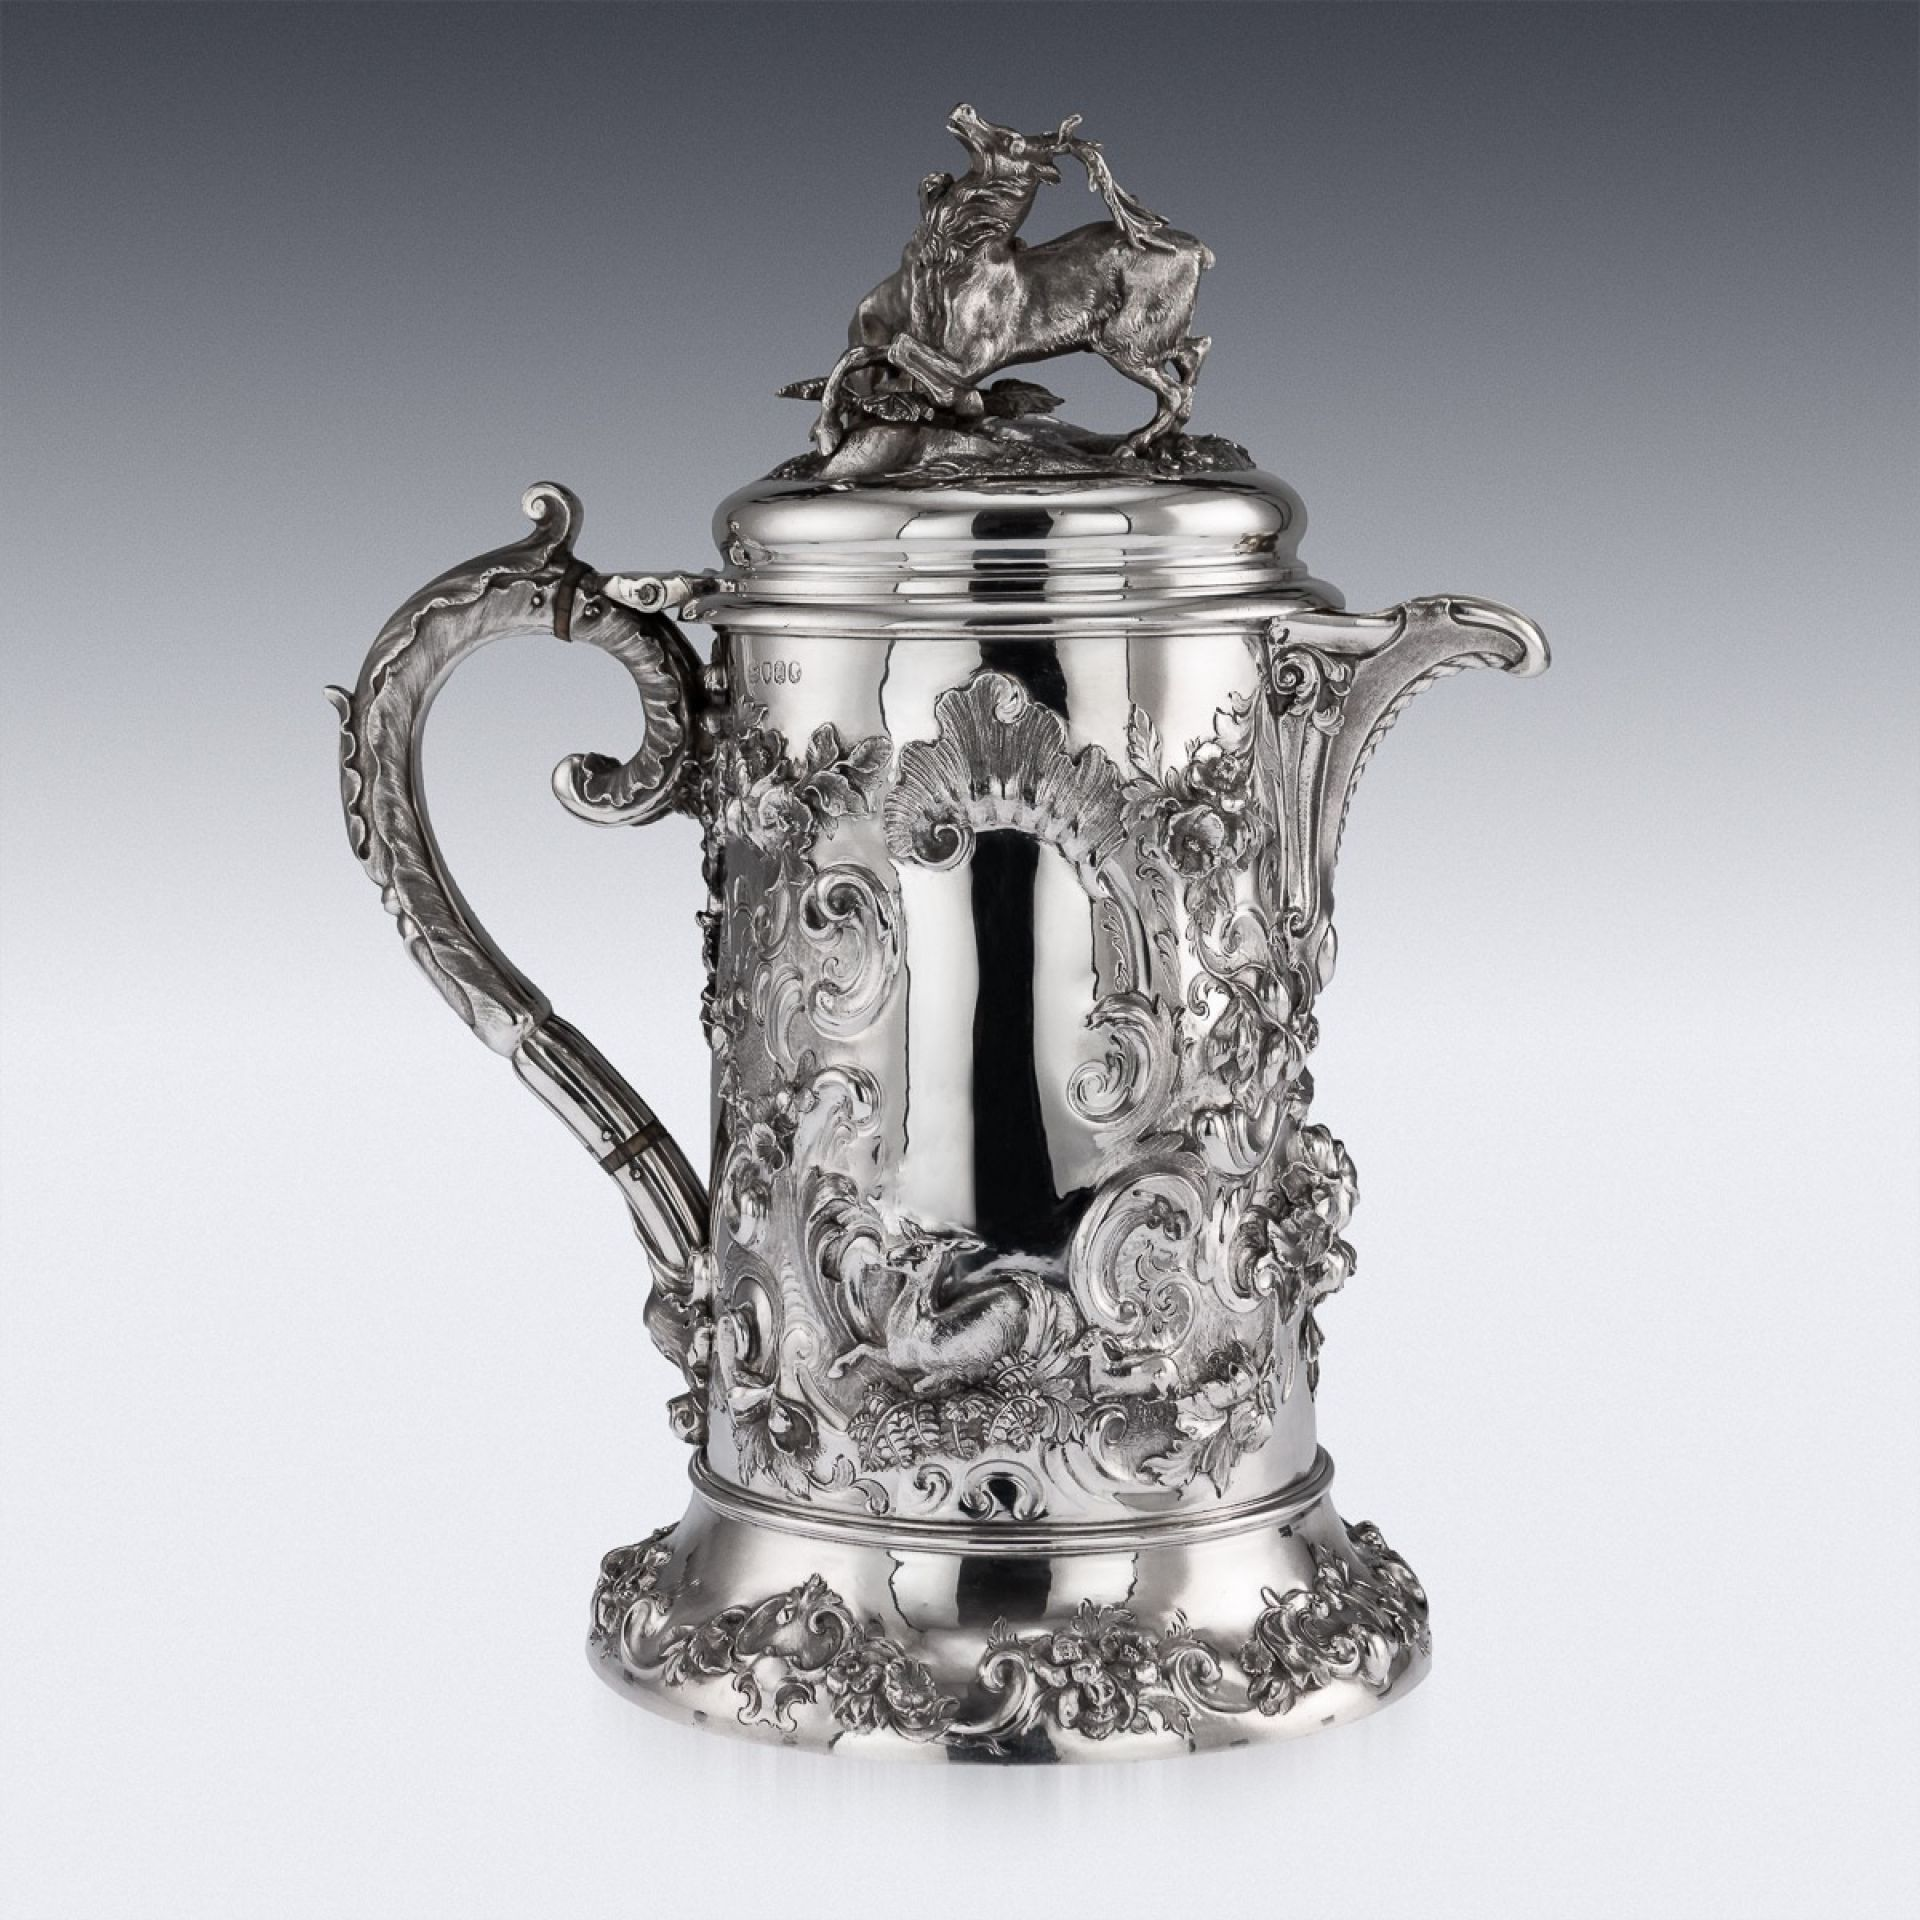 ANTIQUE 19thC VICTORIAN SOLID SILVER HUNTING FLAGON, ROBERT HENNELL c.1855